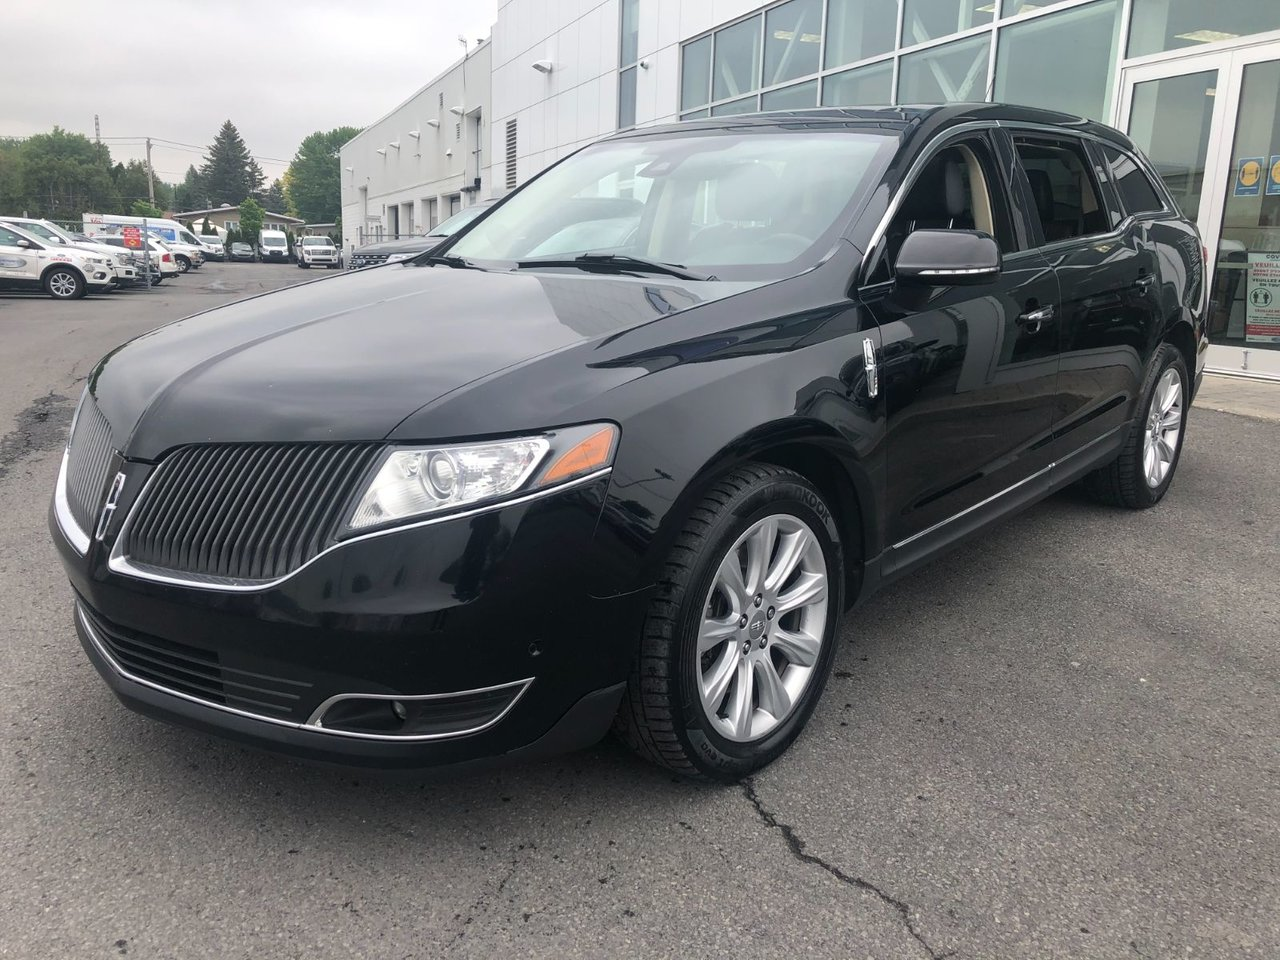 2016 Lincoln  MKT EcoBoost AWD Park Assist - Gps - Cruise Adapt